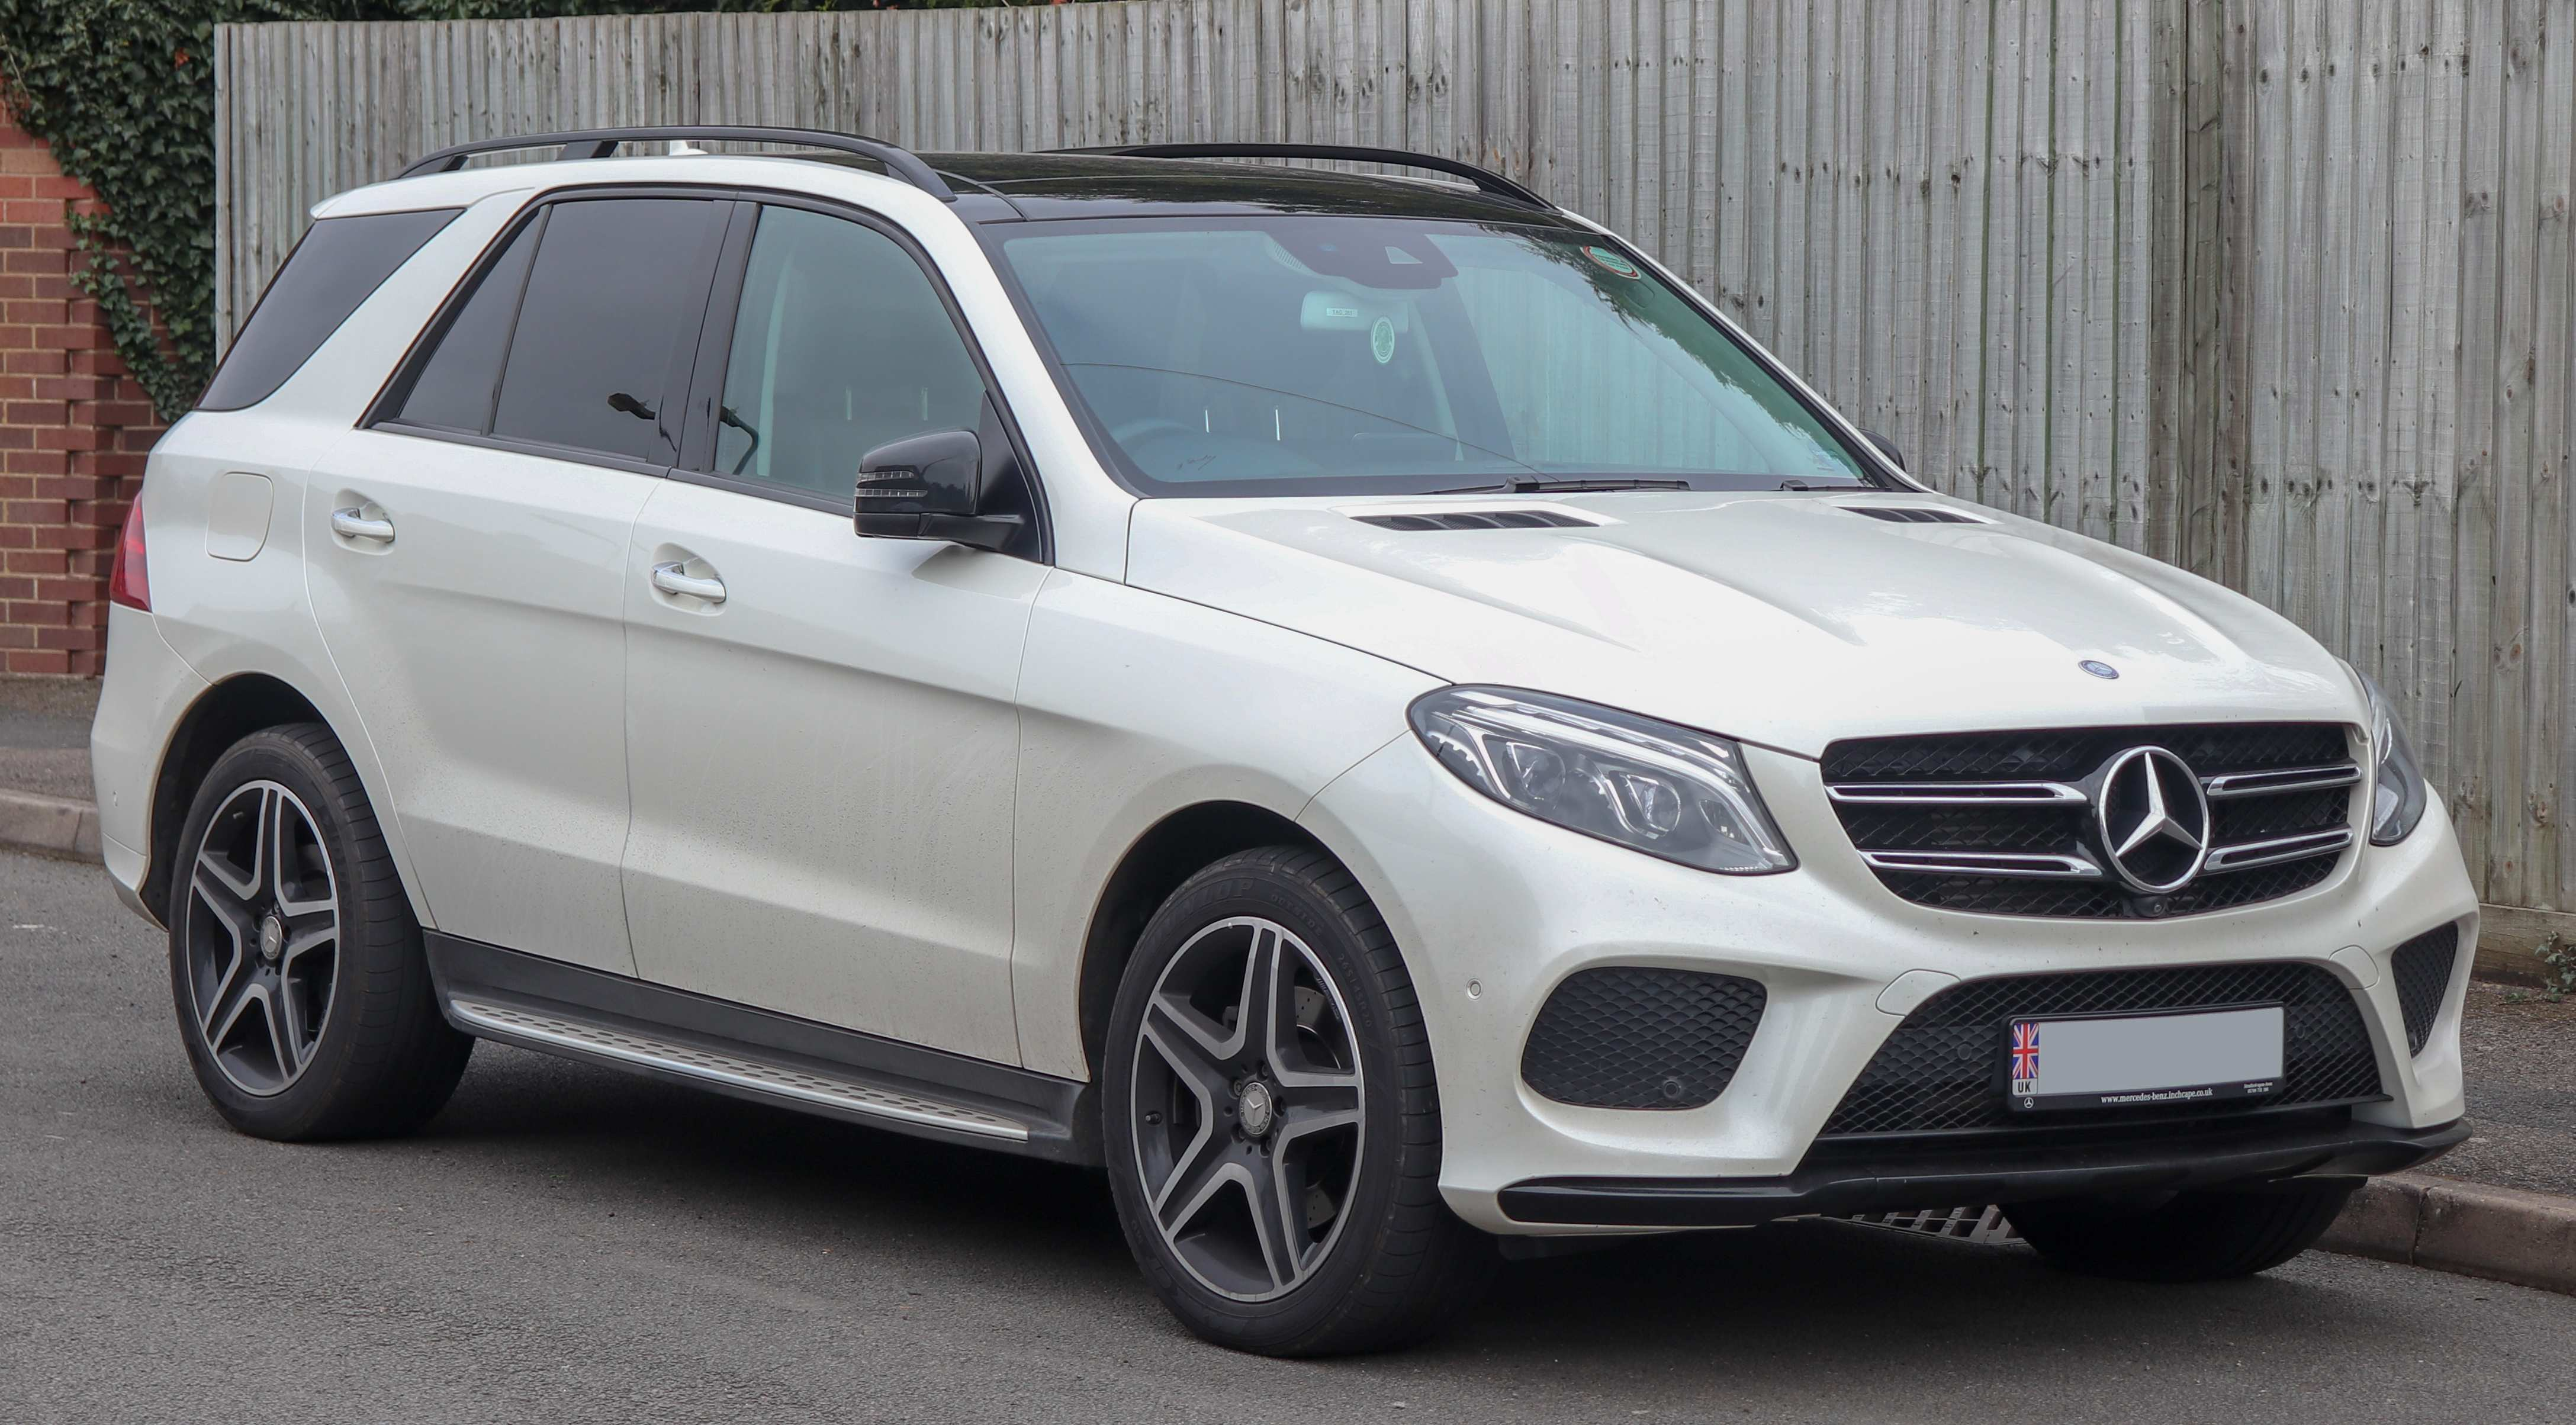 55 The Best 2020 Mercedes ML Class 400 Price And Release Date